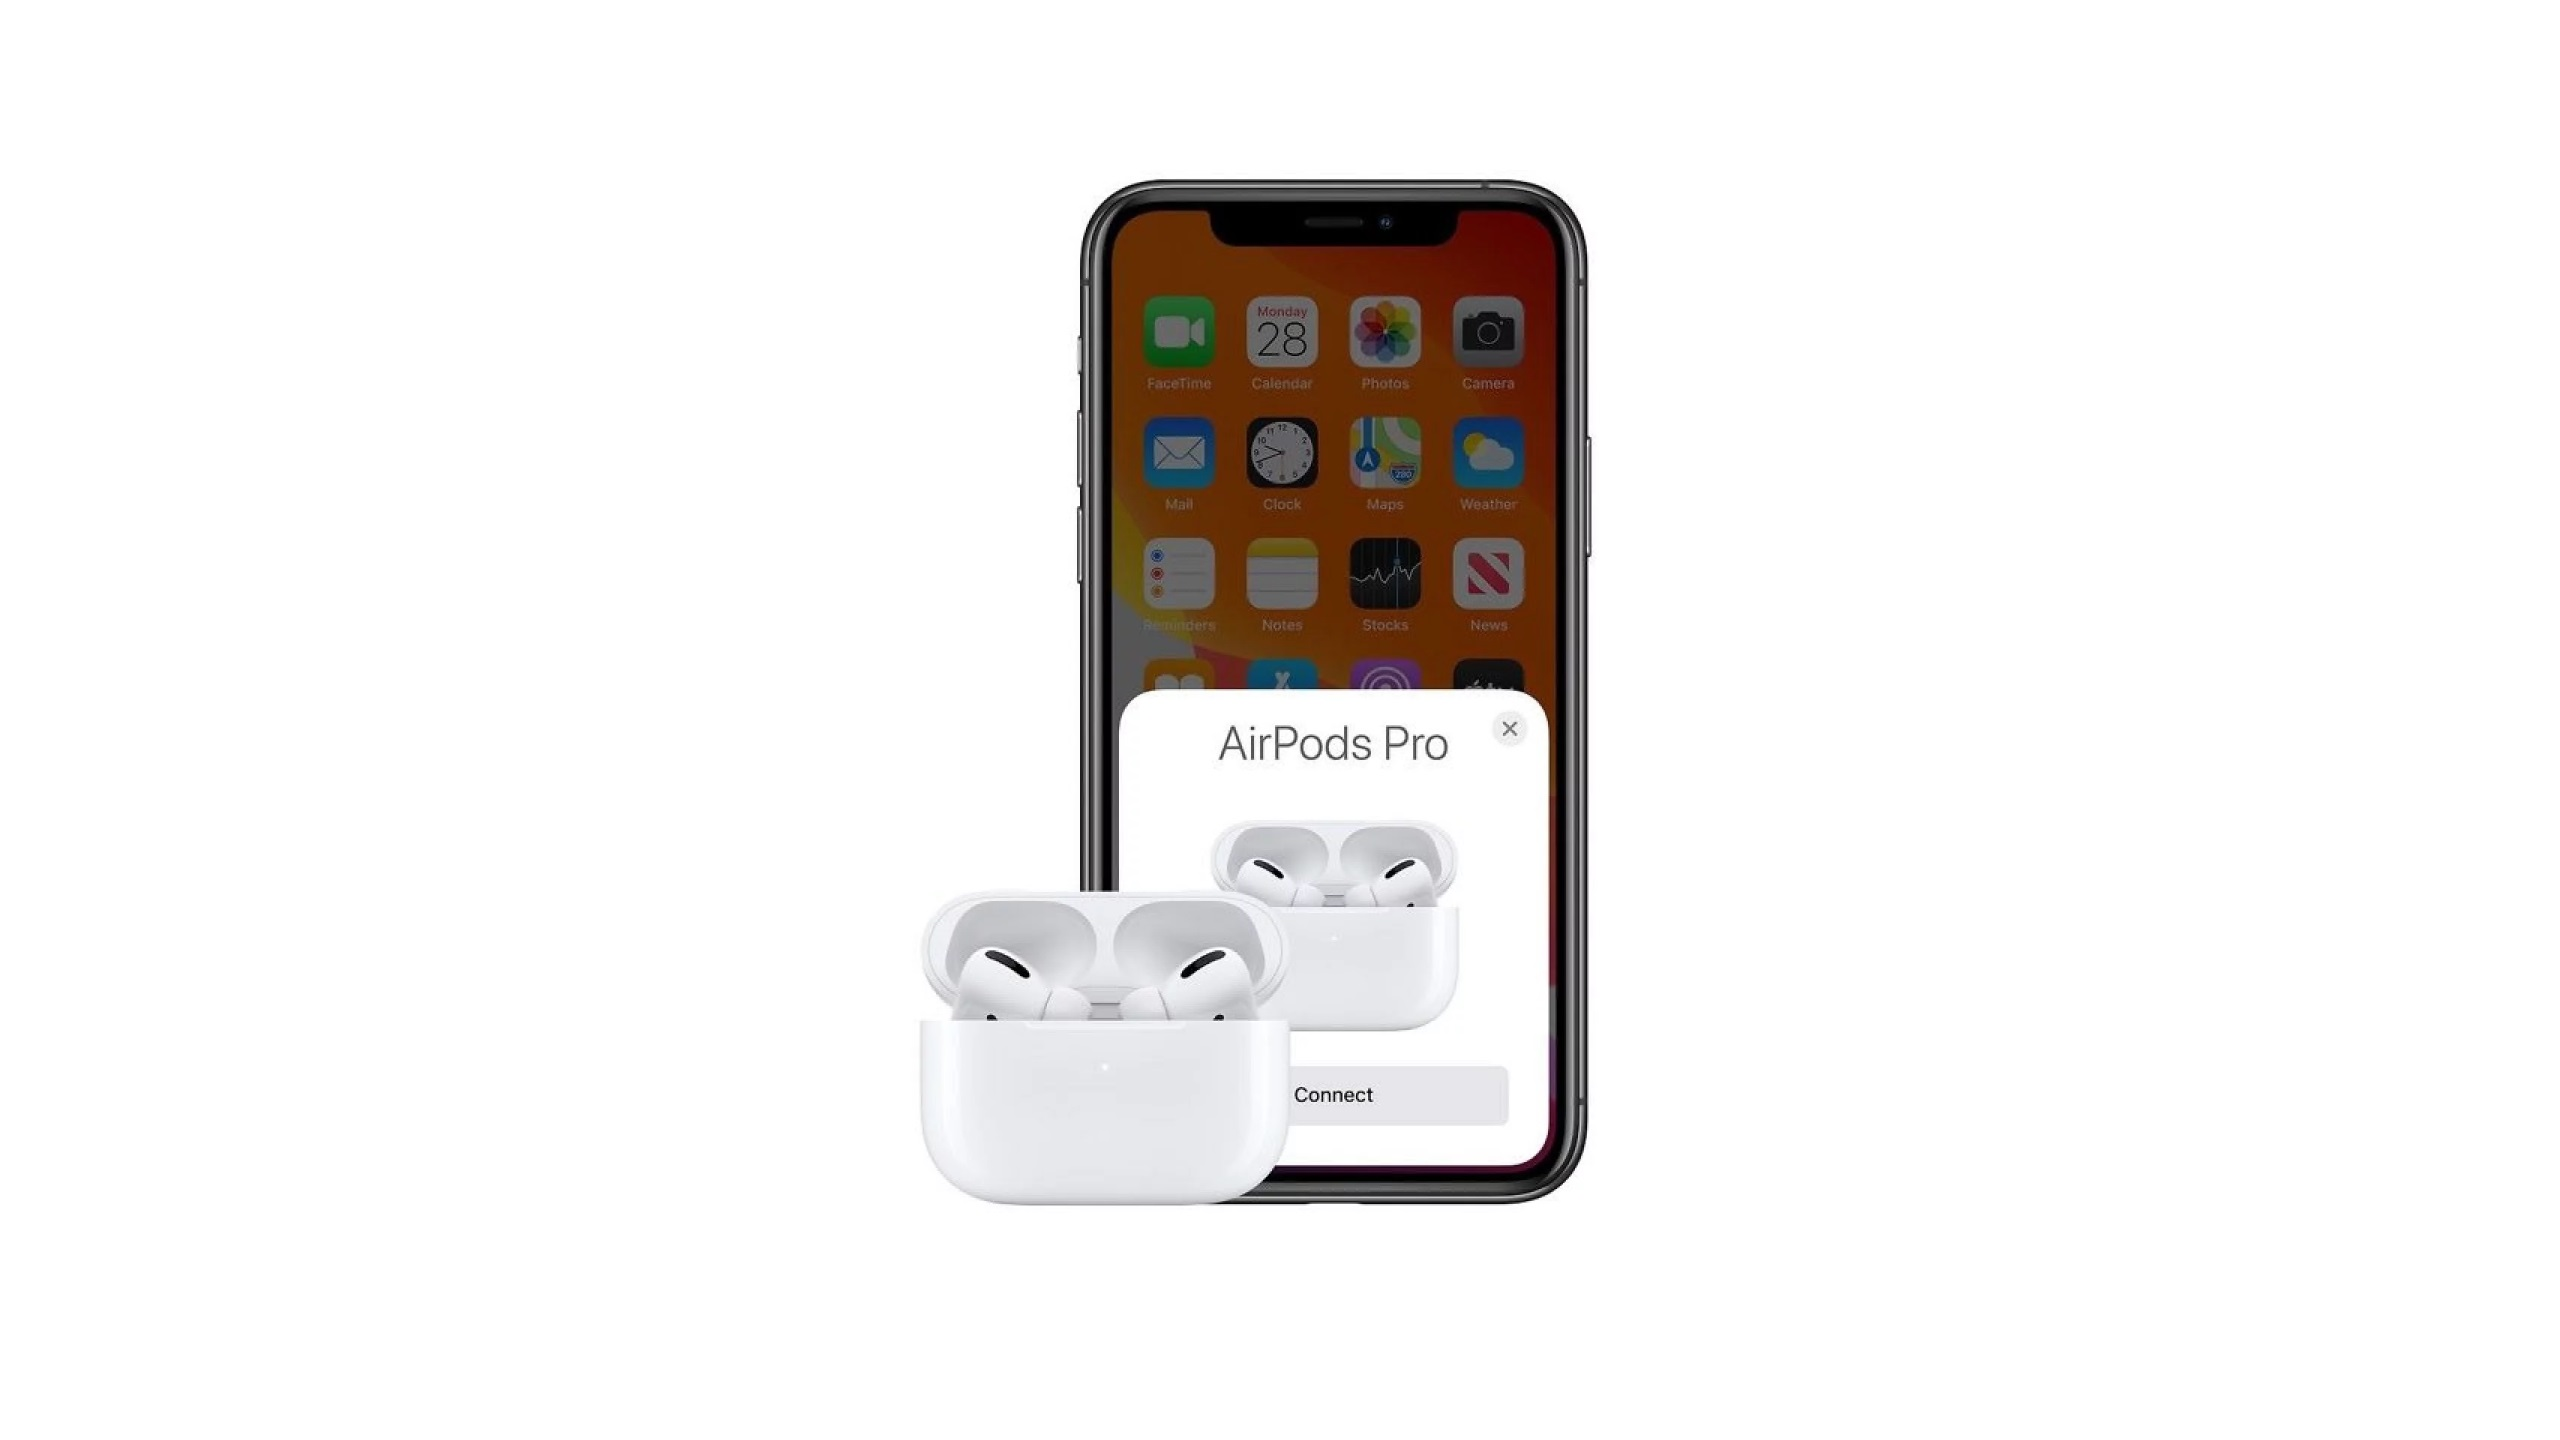 AirPods and iPhone